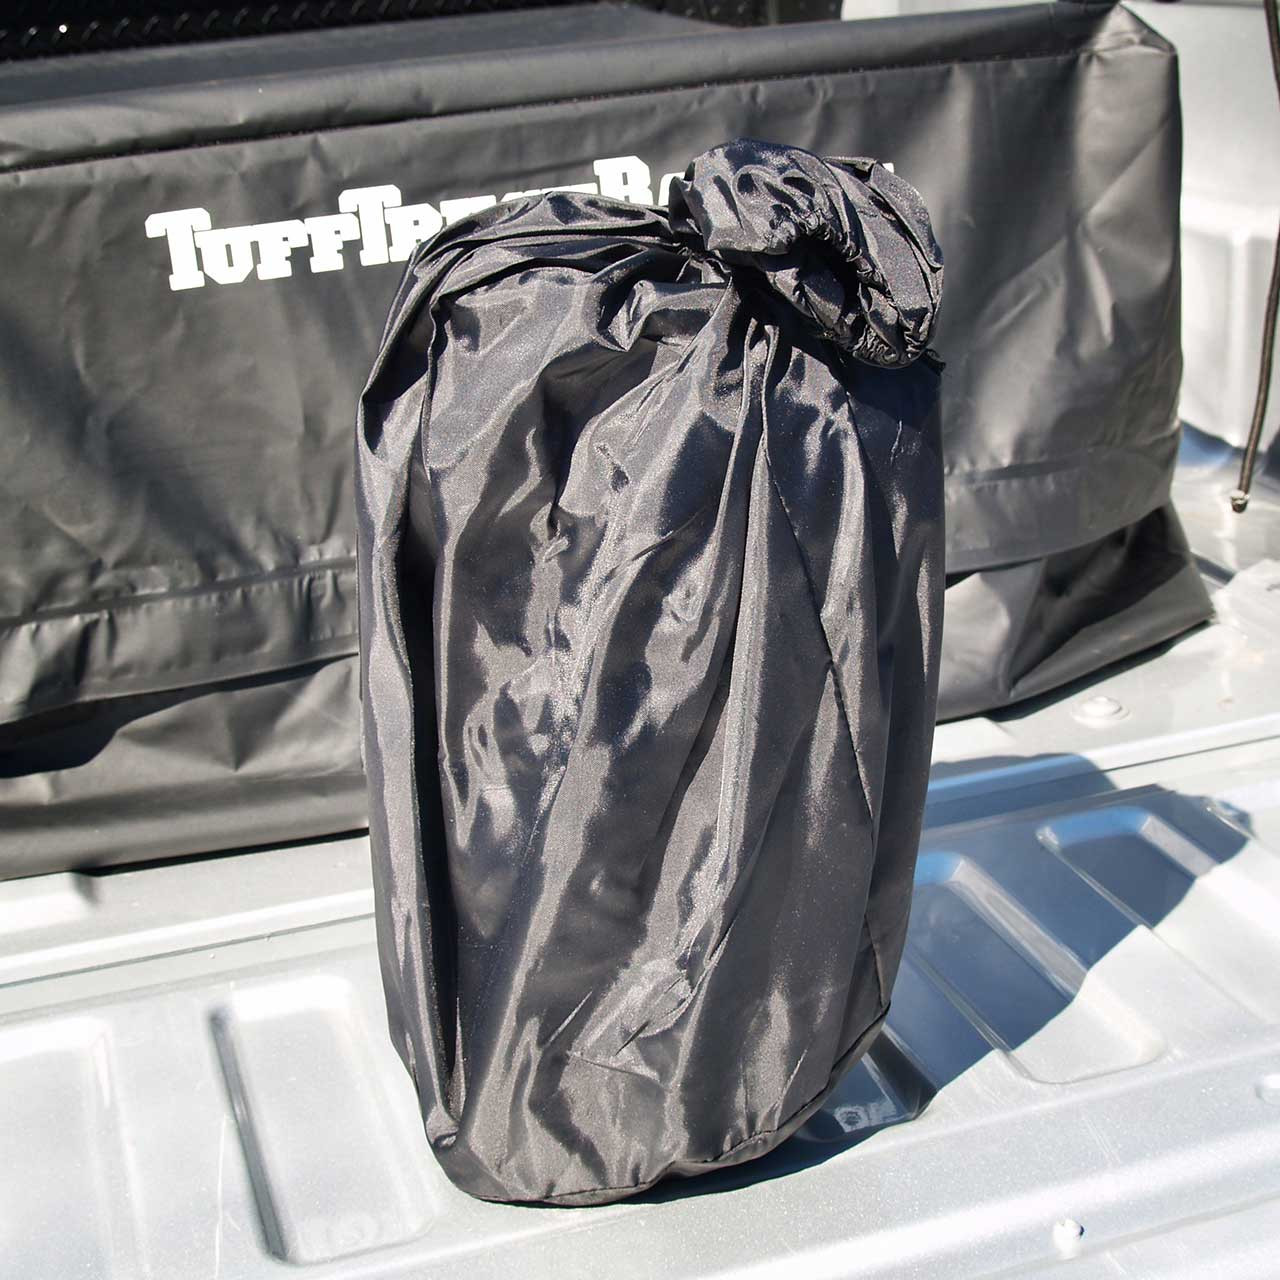 Black waterproof Tuff Truck Bag inside of the included stow bag, ready for storage when not in use